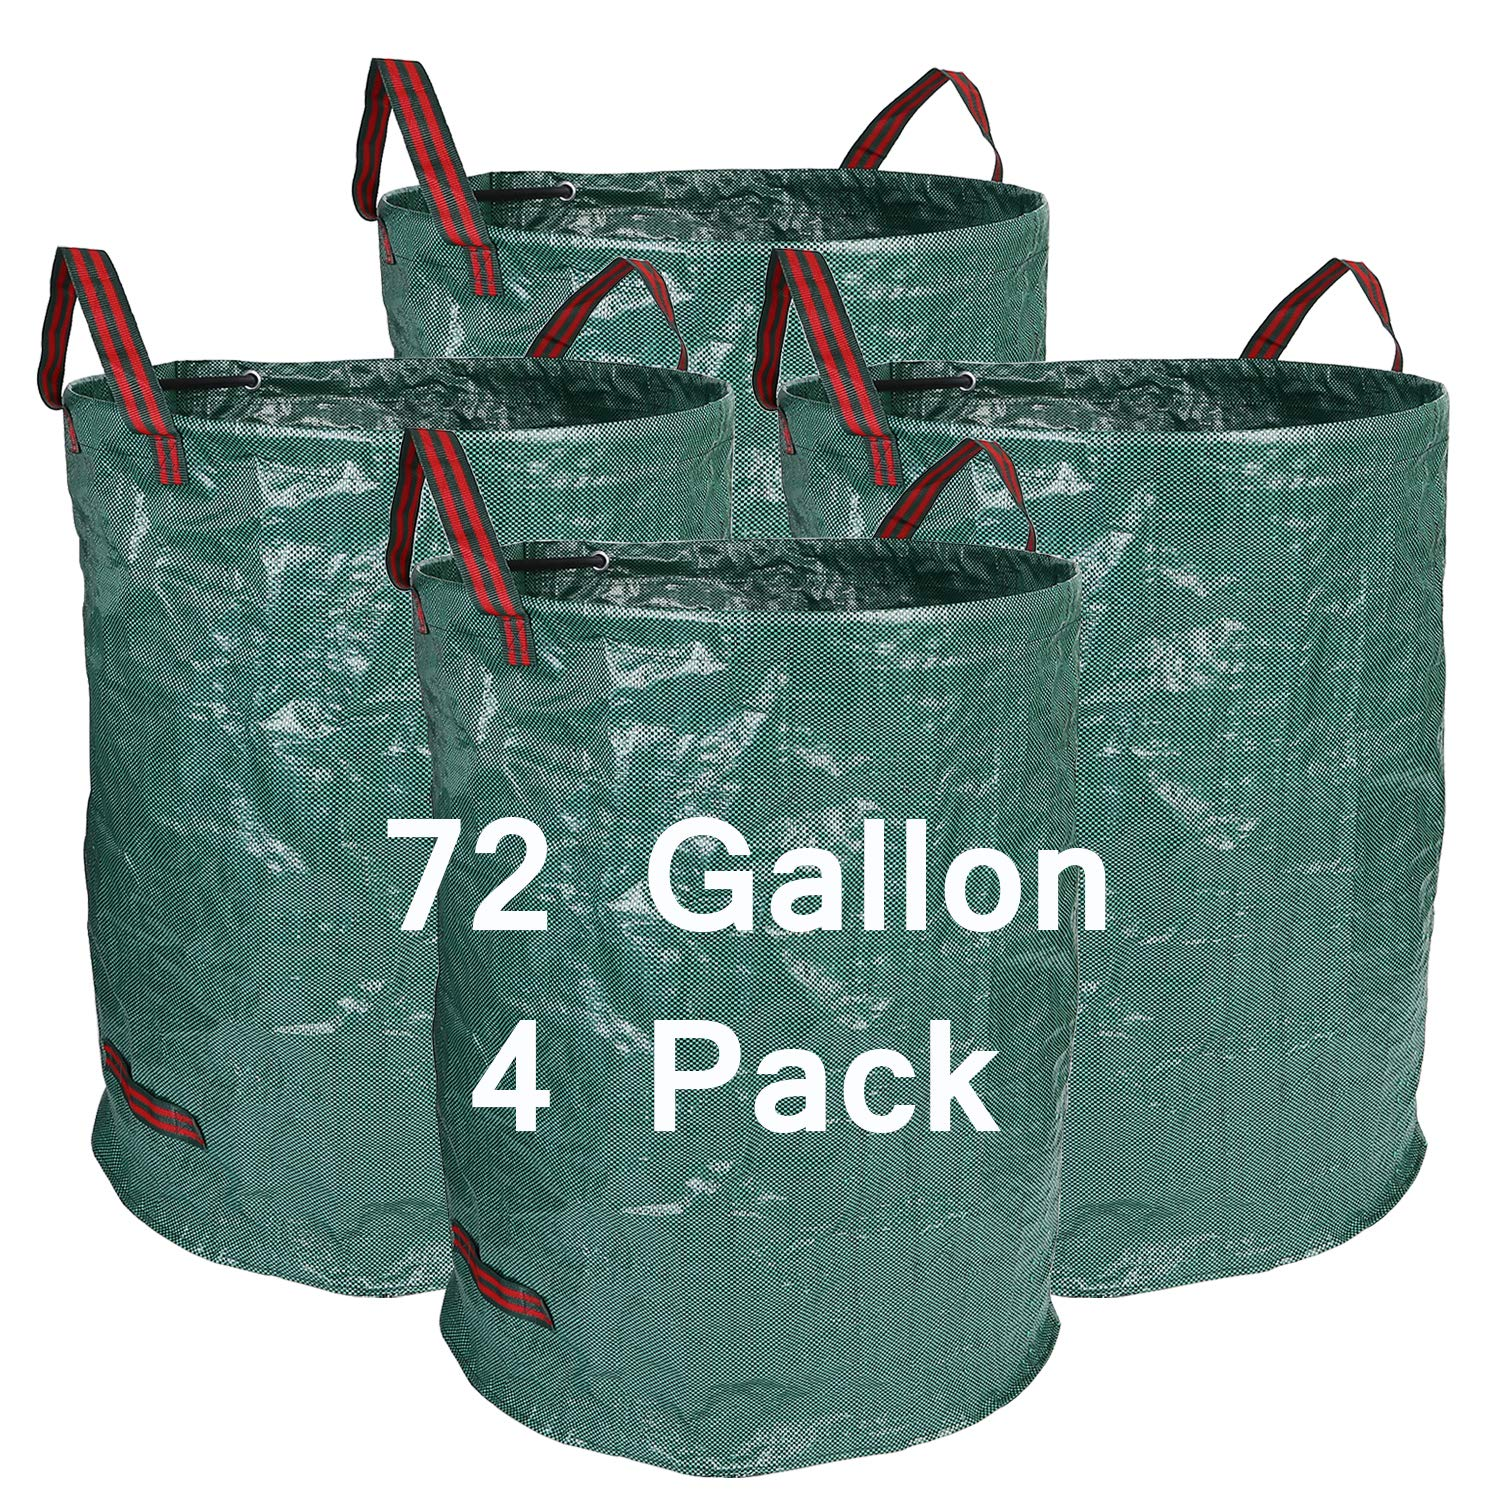 Hengu 4 Pack 72 Gallon Garden Bags Durable Reusable Yard Waste Bags Leaf Waste Trash Container